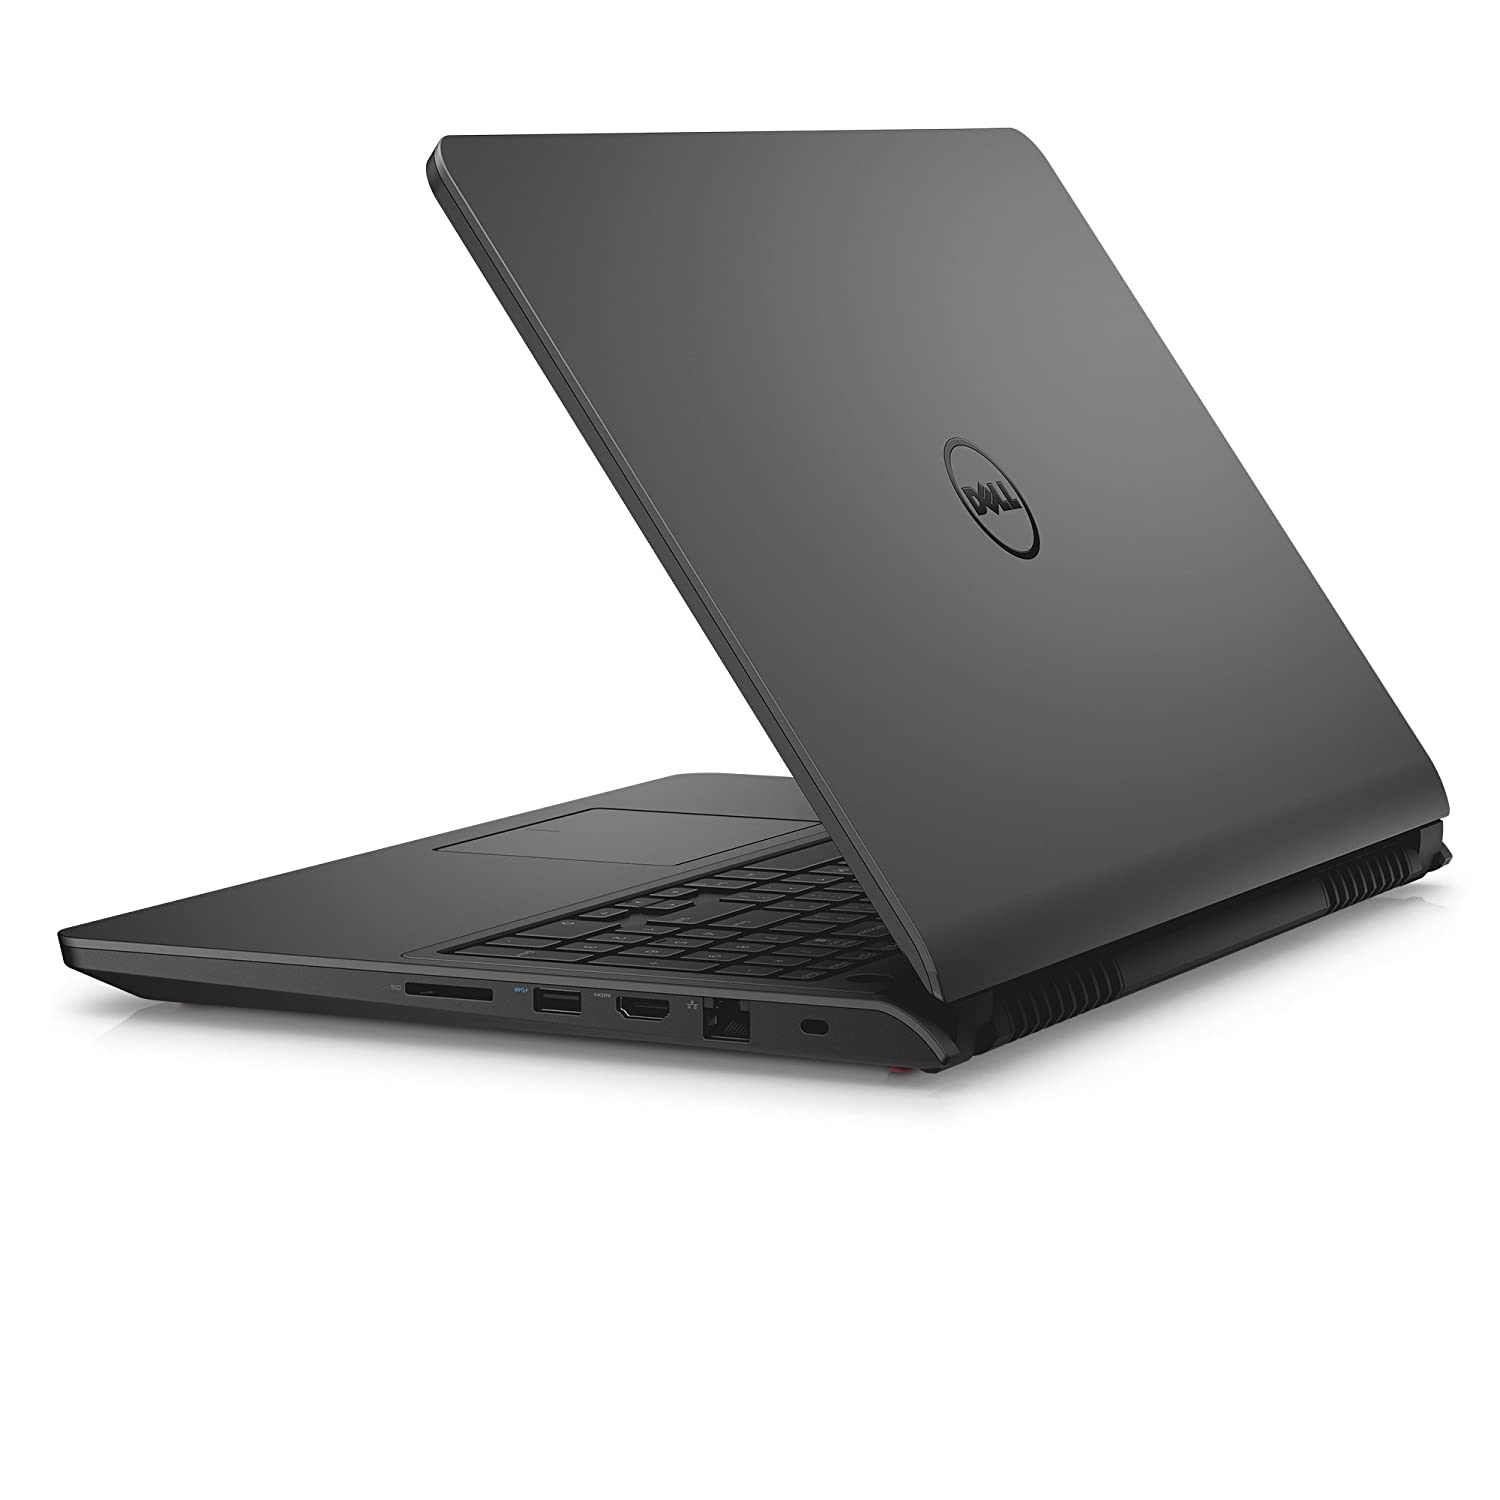 Dell Inspiron i7559-3762GRY 15.6 Inch Touchscreen Laptop (6th Generation Intel Core i5, 8 GB RAM, 1 TB HDD + 8 GB SSD) NVIDIA GeForce GTX 960M